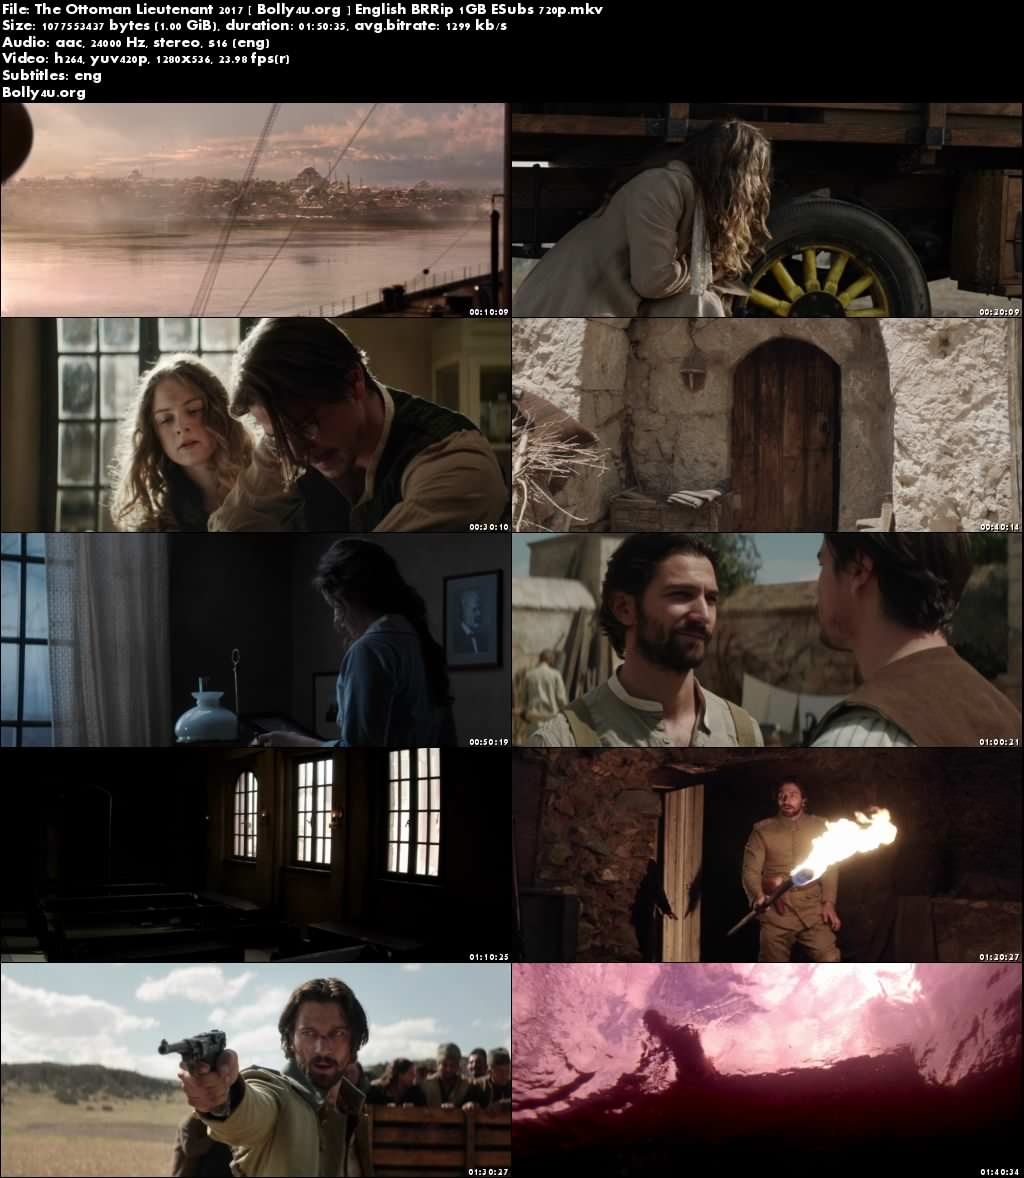 The Ottoman Lieutenant 2017 BRRip 1GB English ESubs 720p Download